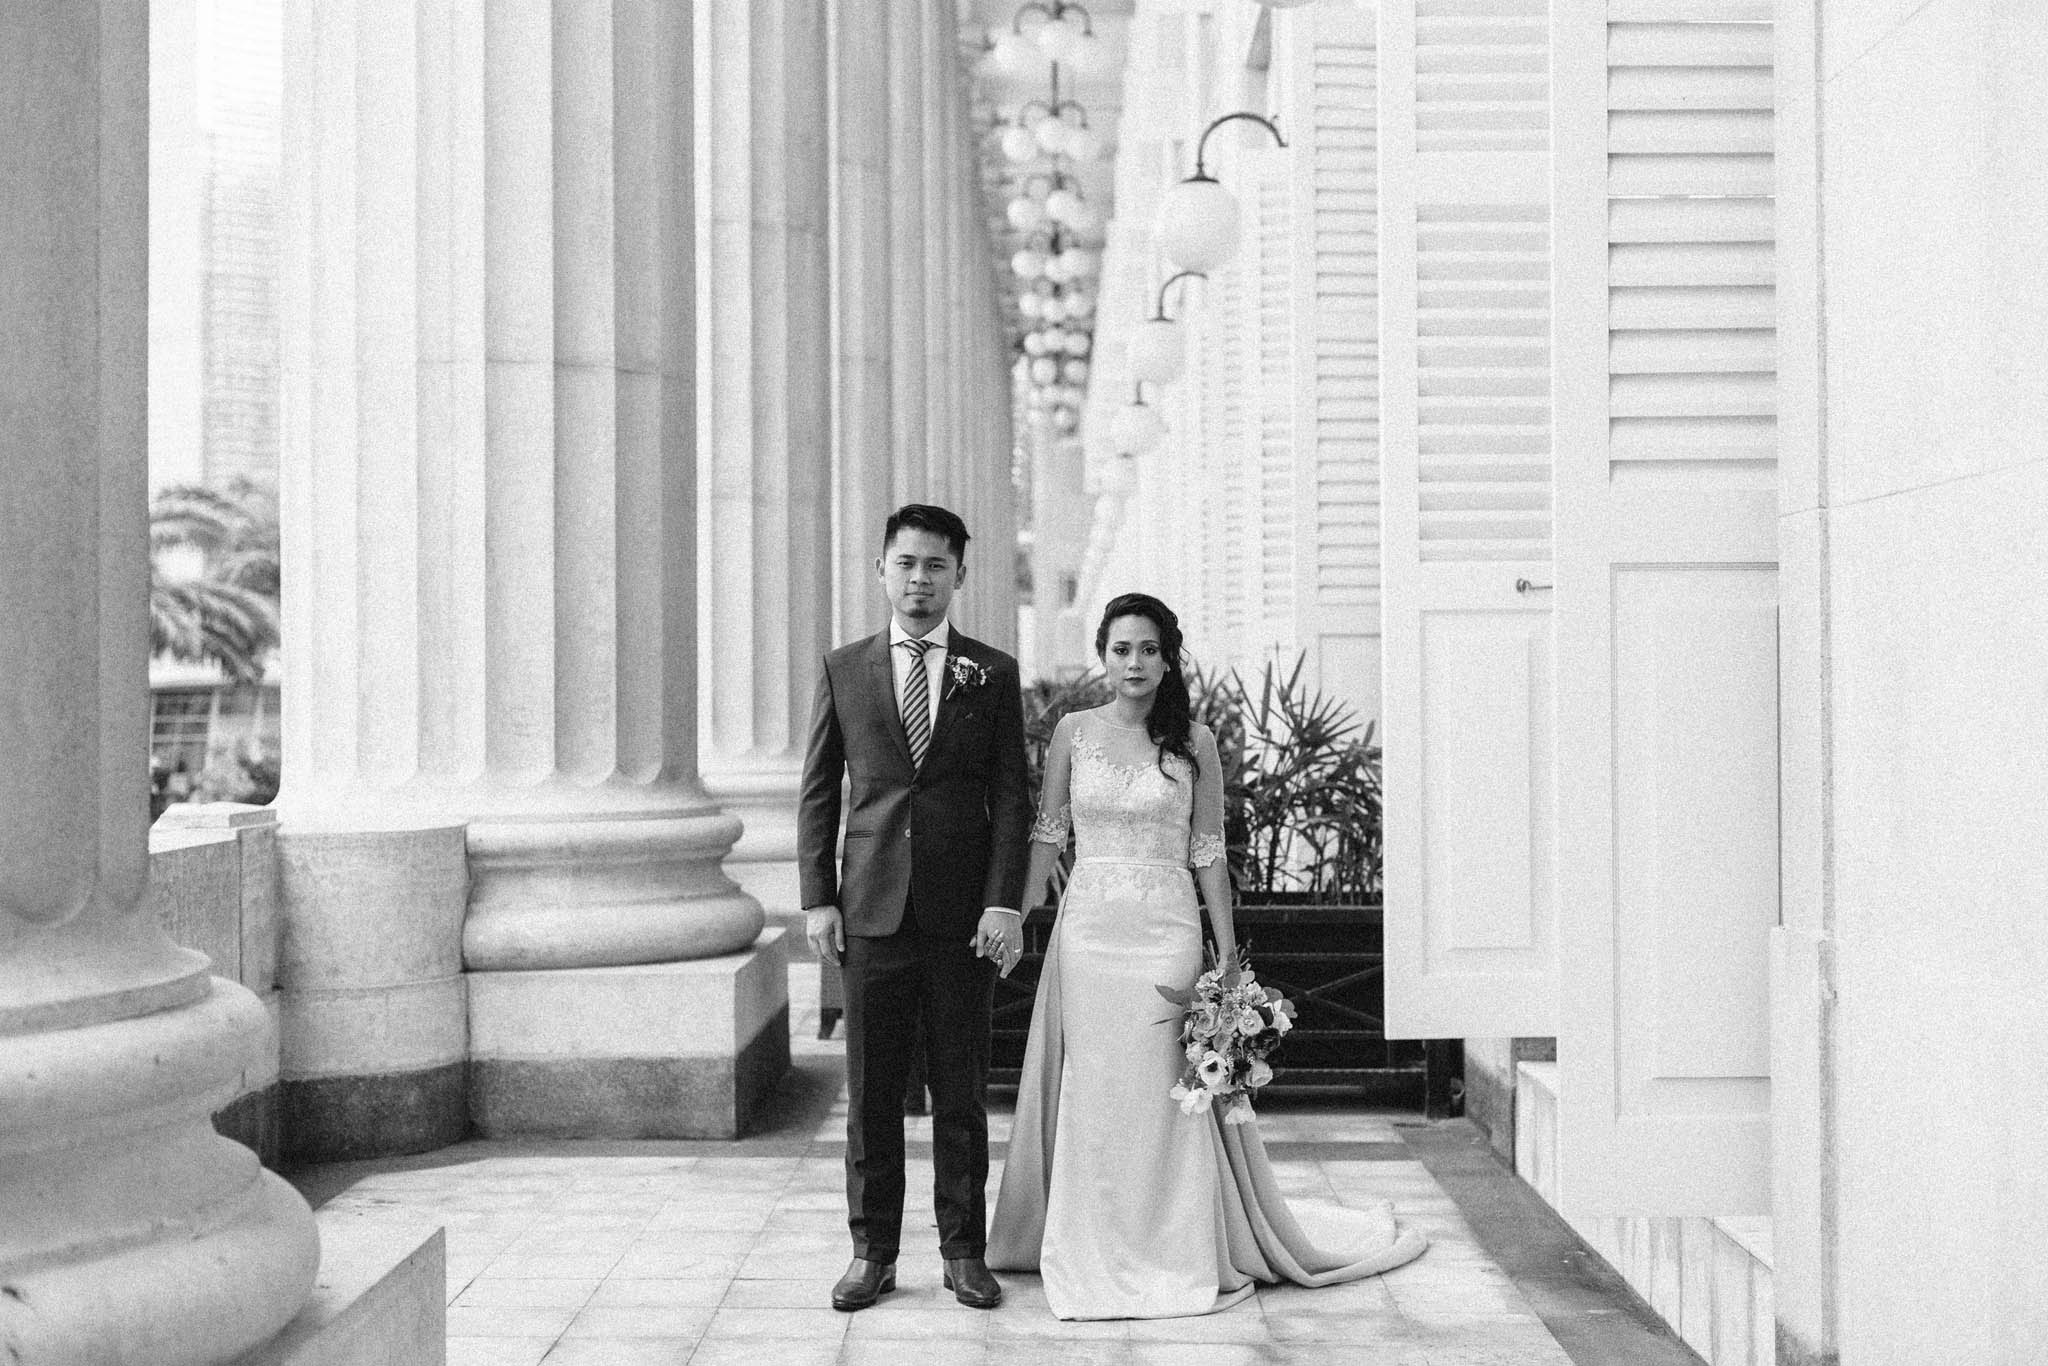 singapore-wedding-photographer-wedding-hafiana-teck-kuan-081.jpg